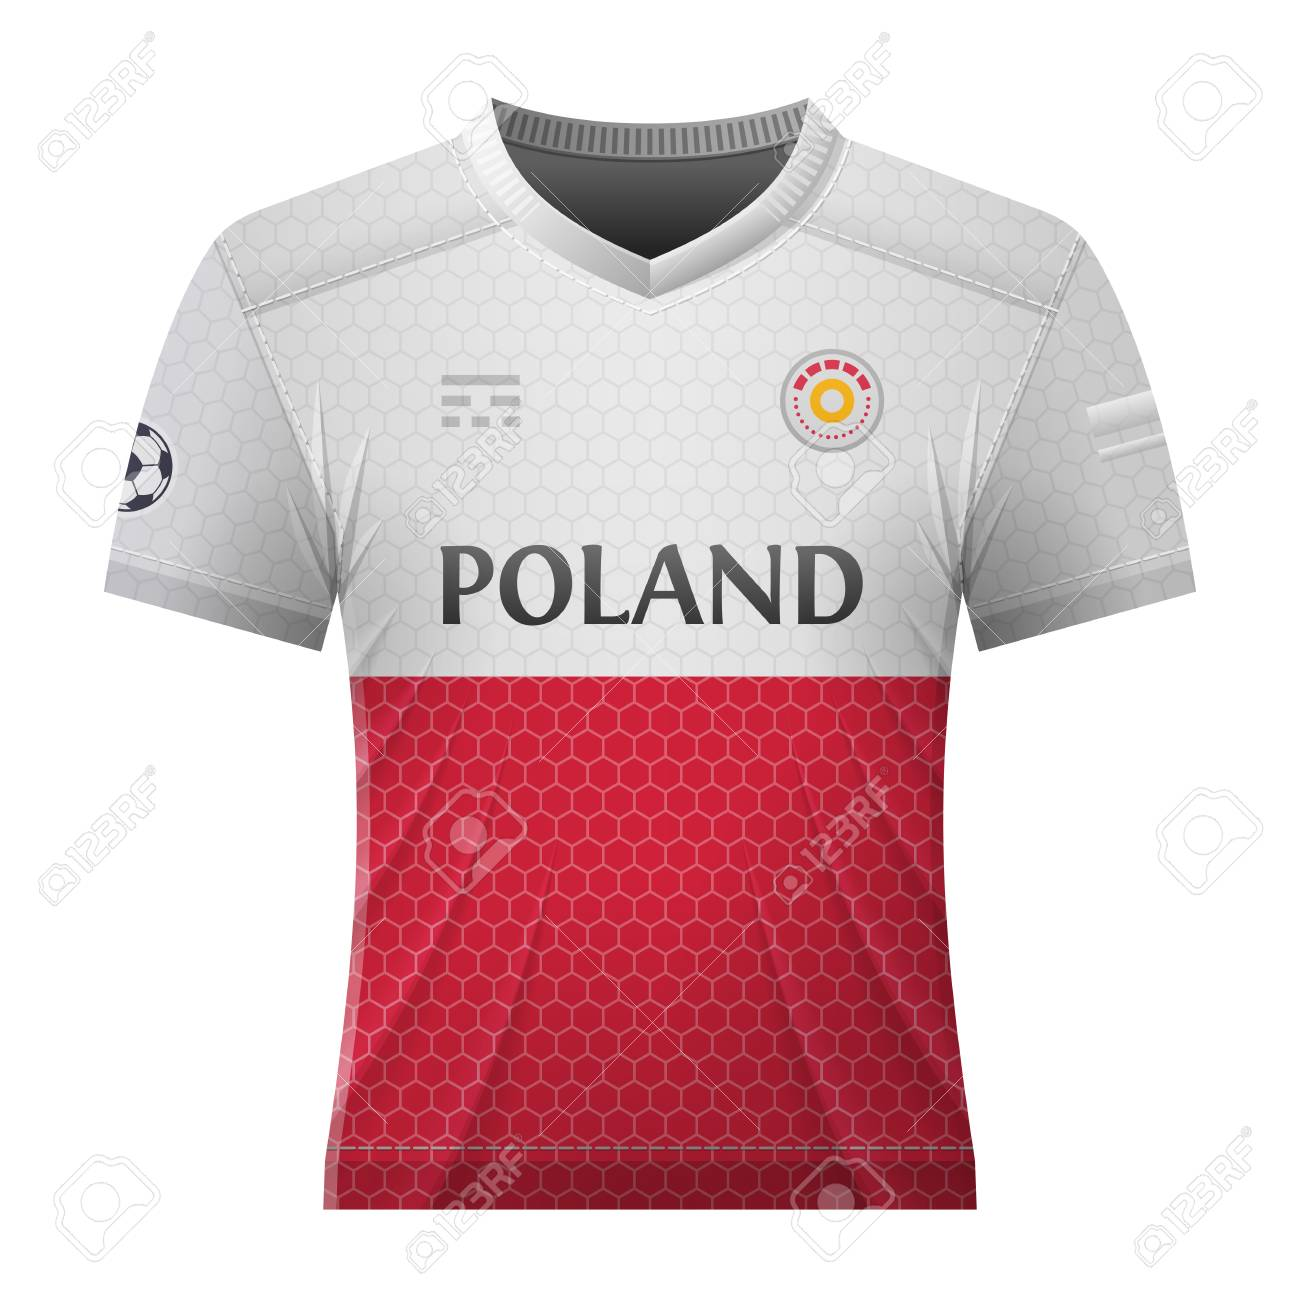 timeless design 015bf 22b04 Soccer shirt in colors of polish flag. National jersey for football..